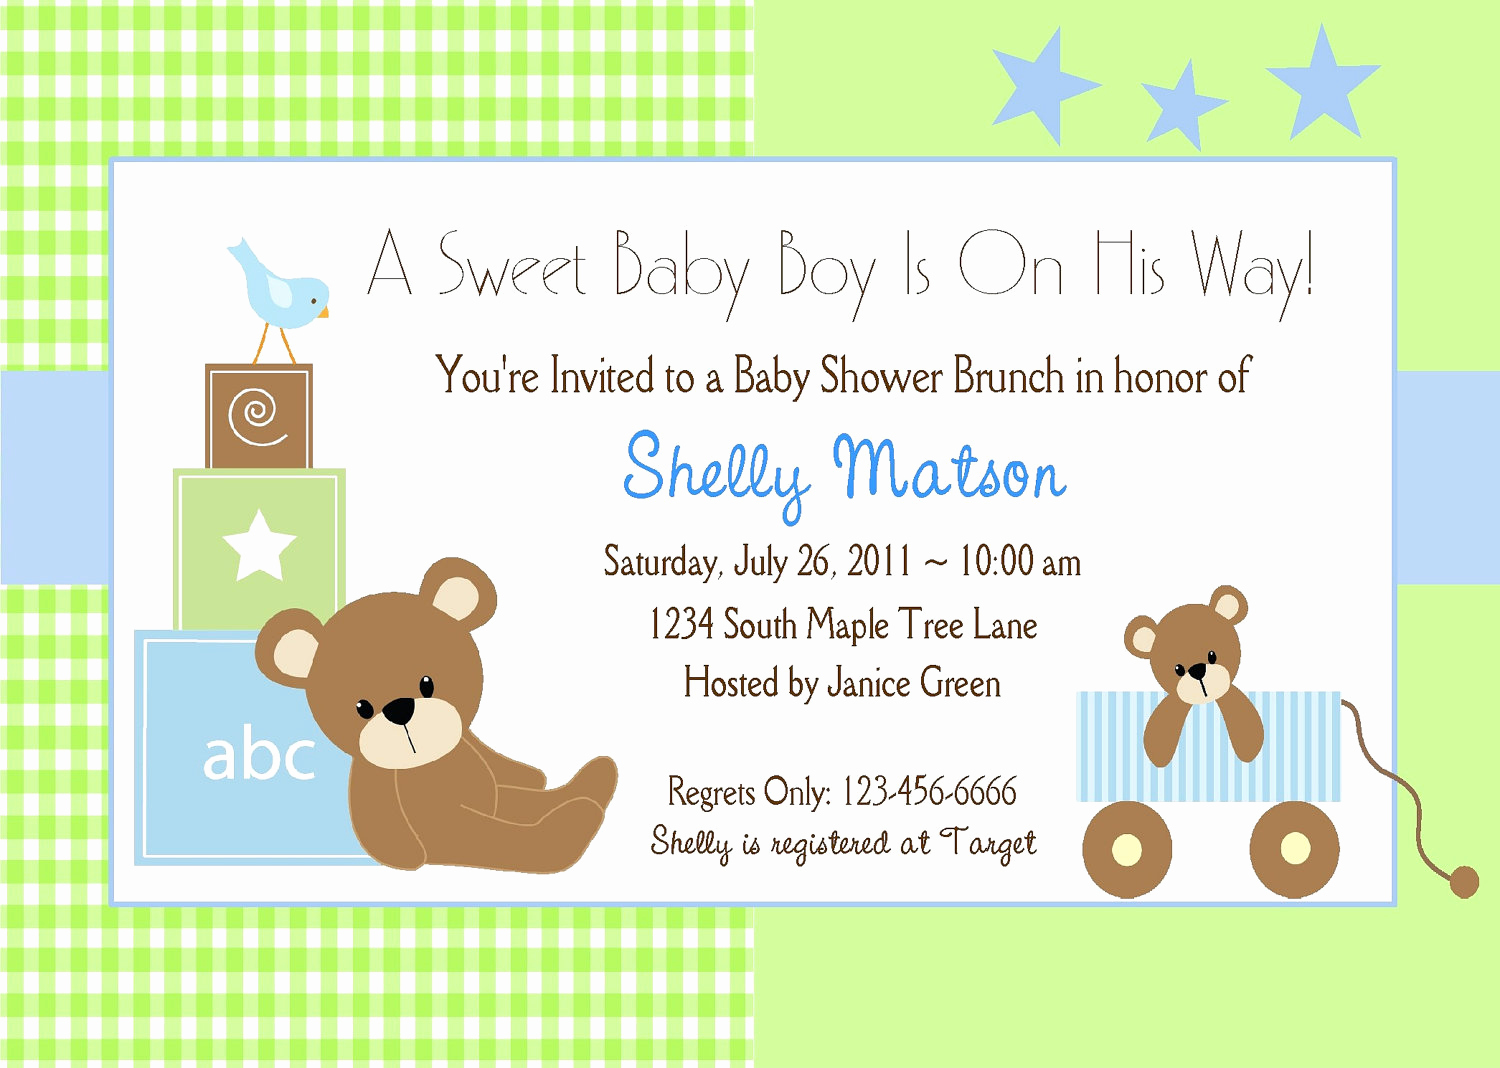 Free Baby Shower Invitation Templates Luxury Free Baby Boy Shower Invitations Templates Baby Boy